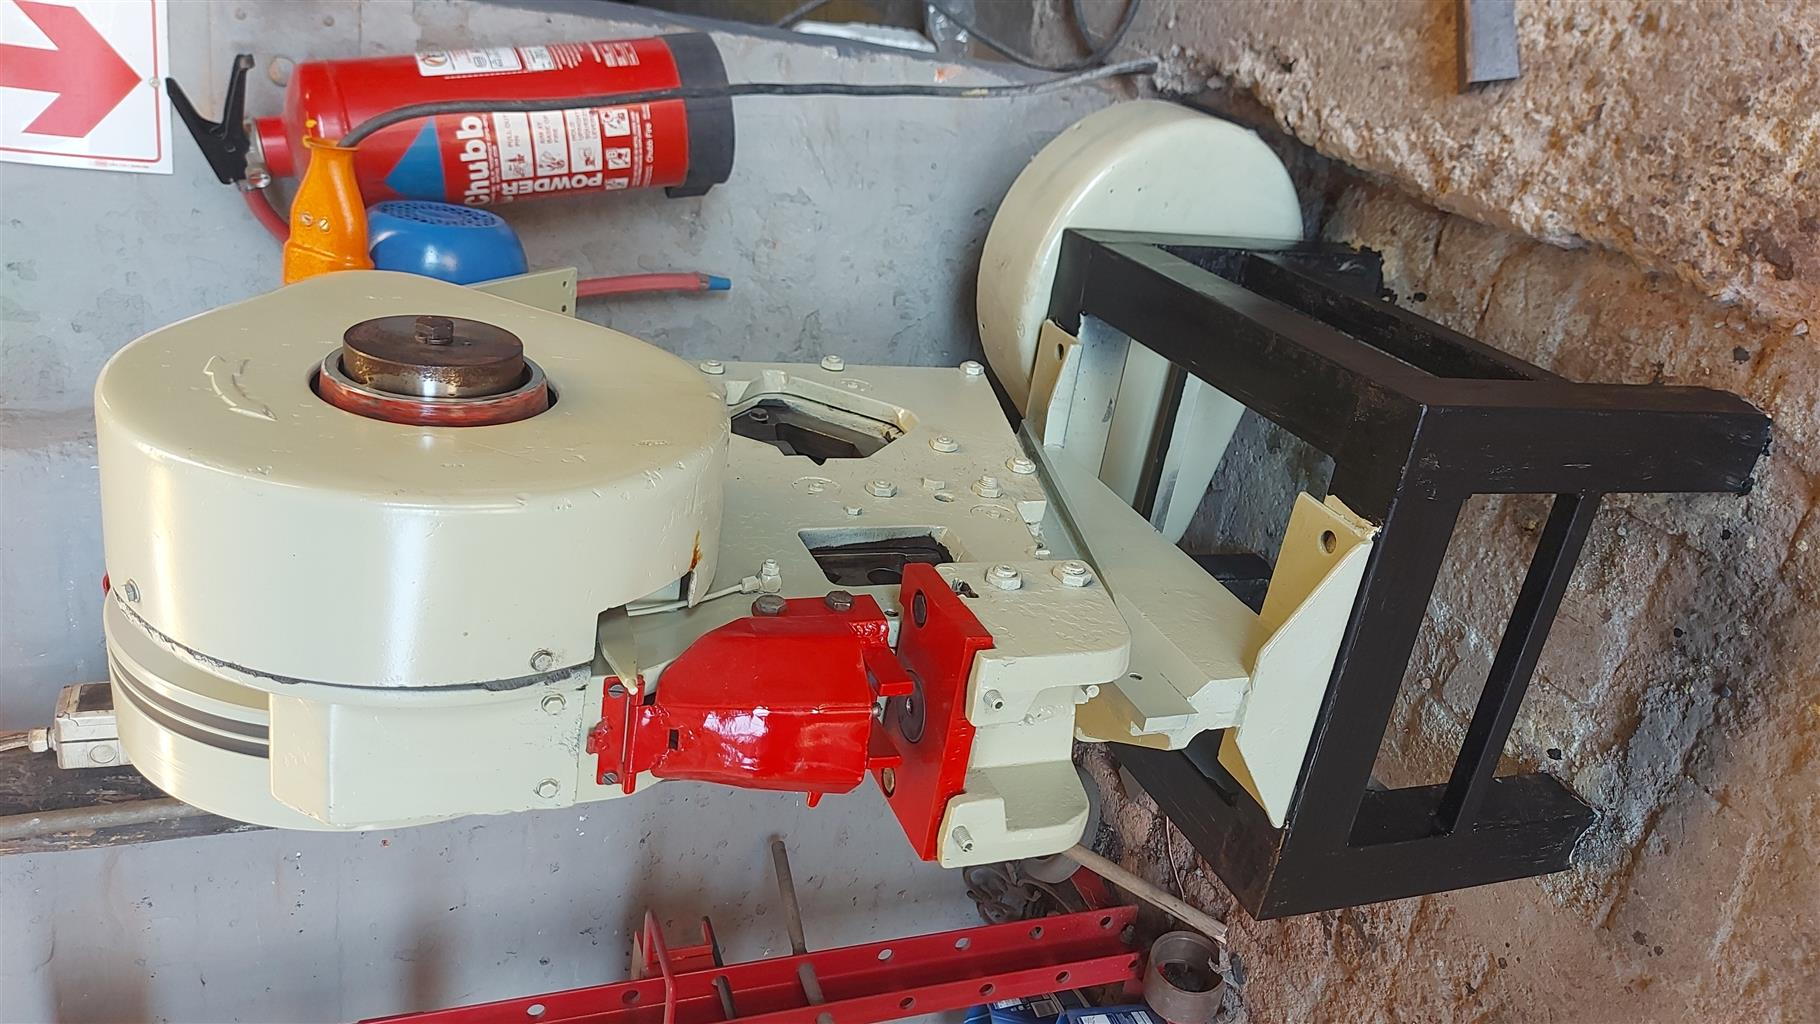 Mubea  21 Ton  R 18 000  Used cropper/ punch Iron worker  380 v /3 phase  Punch